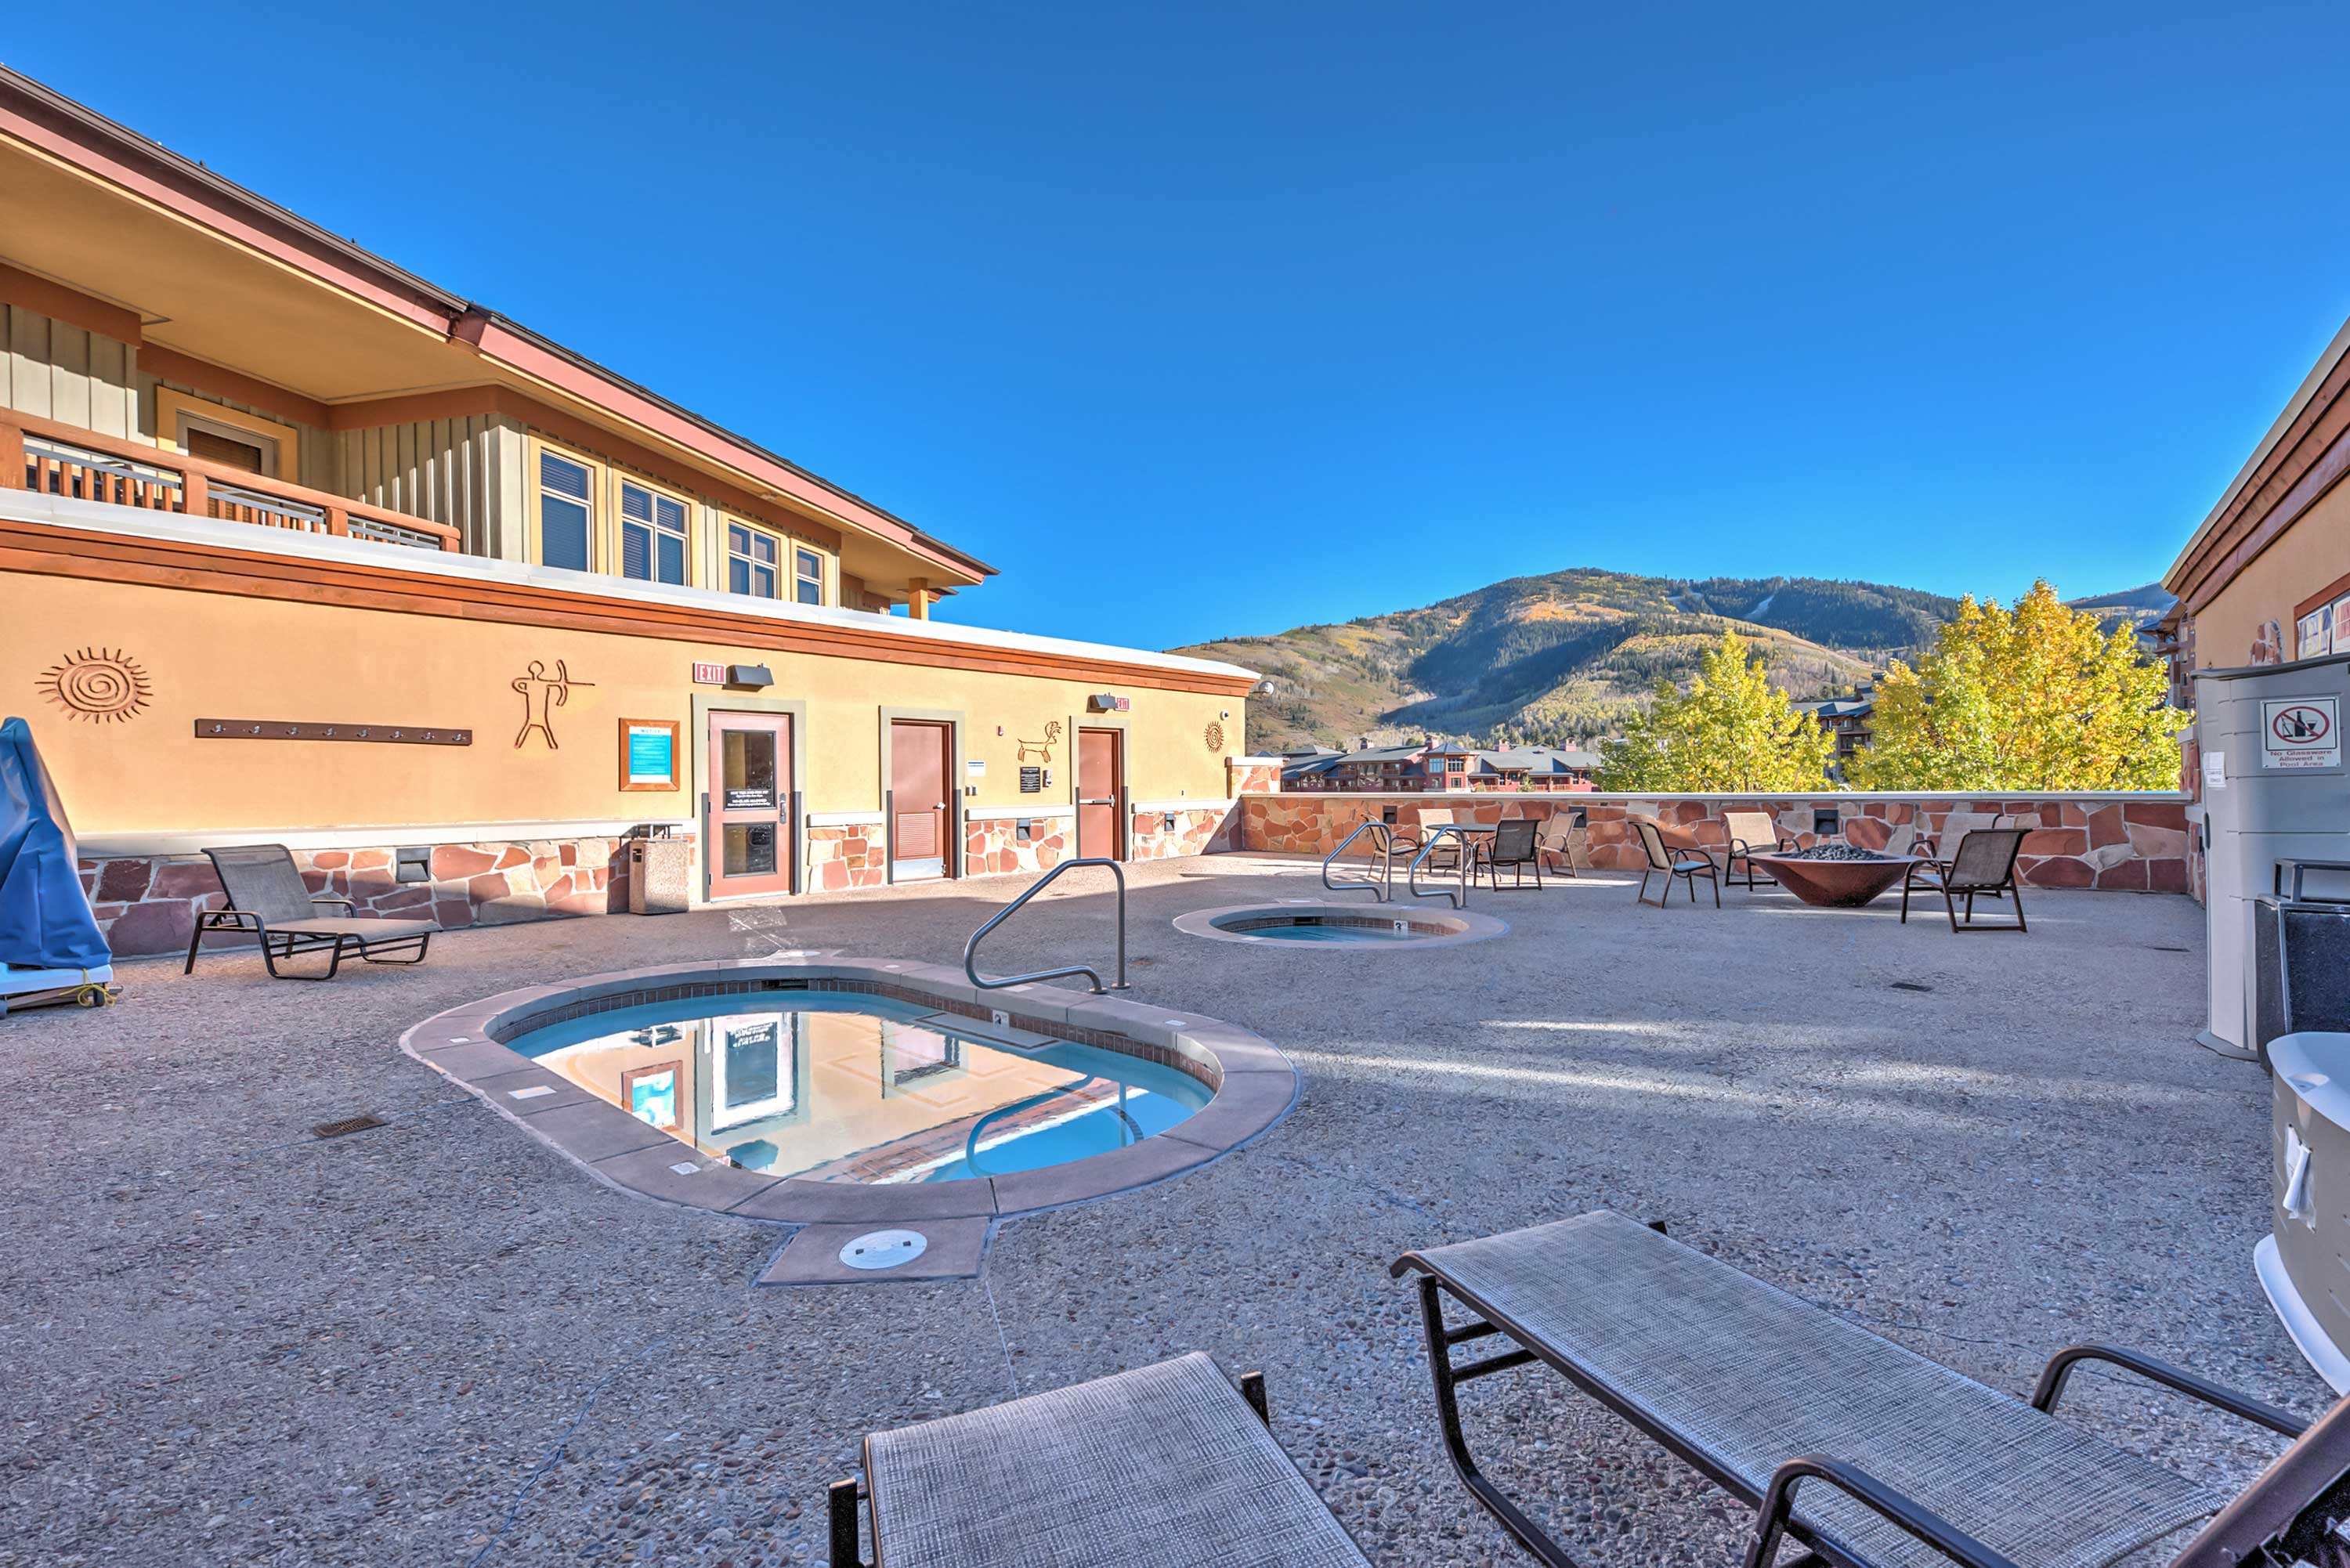 Enjoy drinks in the hot tub or by the fire pit after a long day on the slopes!